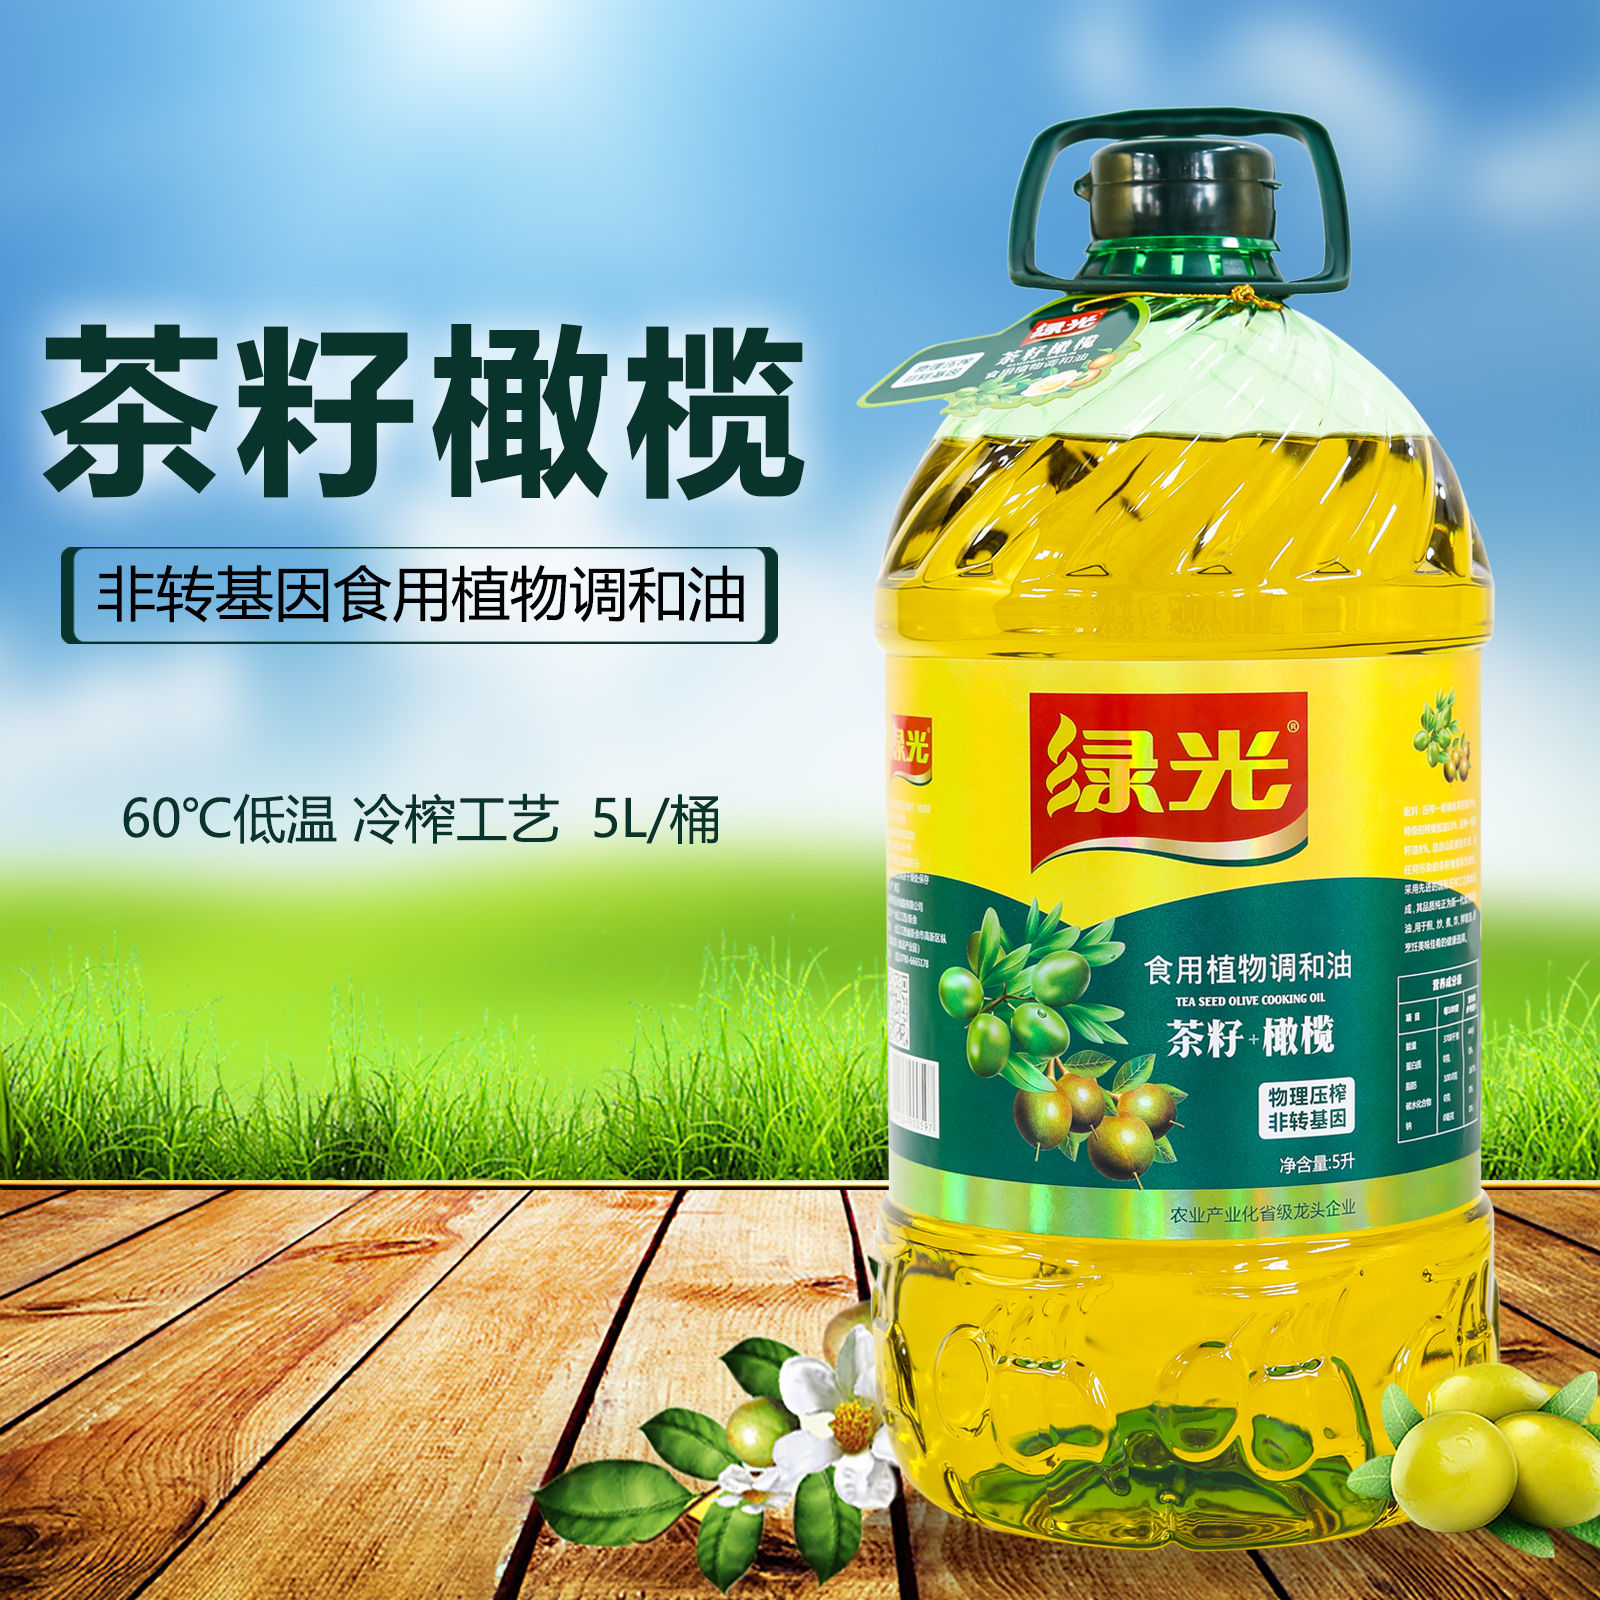 Green tea seed olive edible plant blend oil 5L edible oil non transgenic physical pressed olive oil